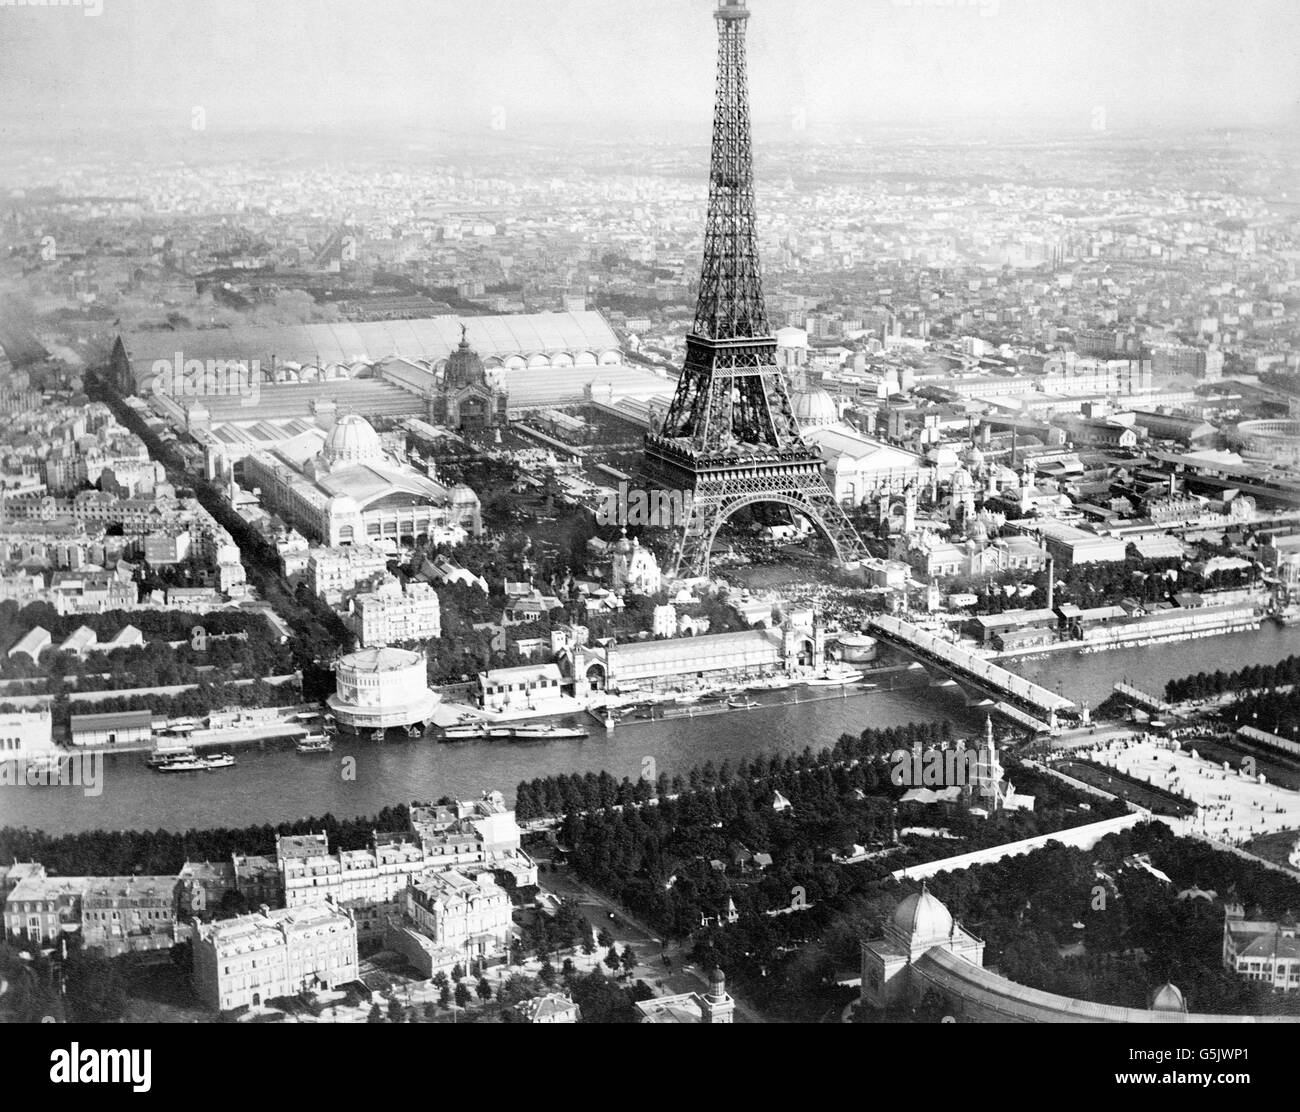 Paris Exposition 1889. Aerial view of Paris, France, from a balloon, showing the River Seine, the Eiffel Tower and - Stock Image